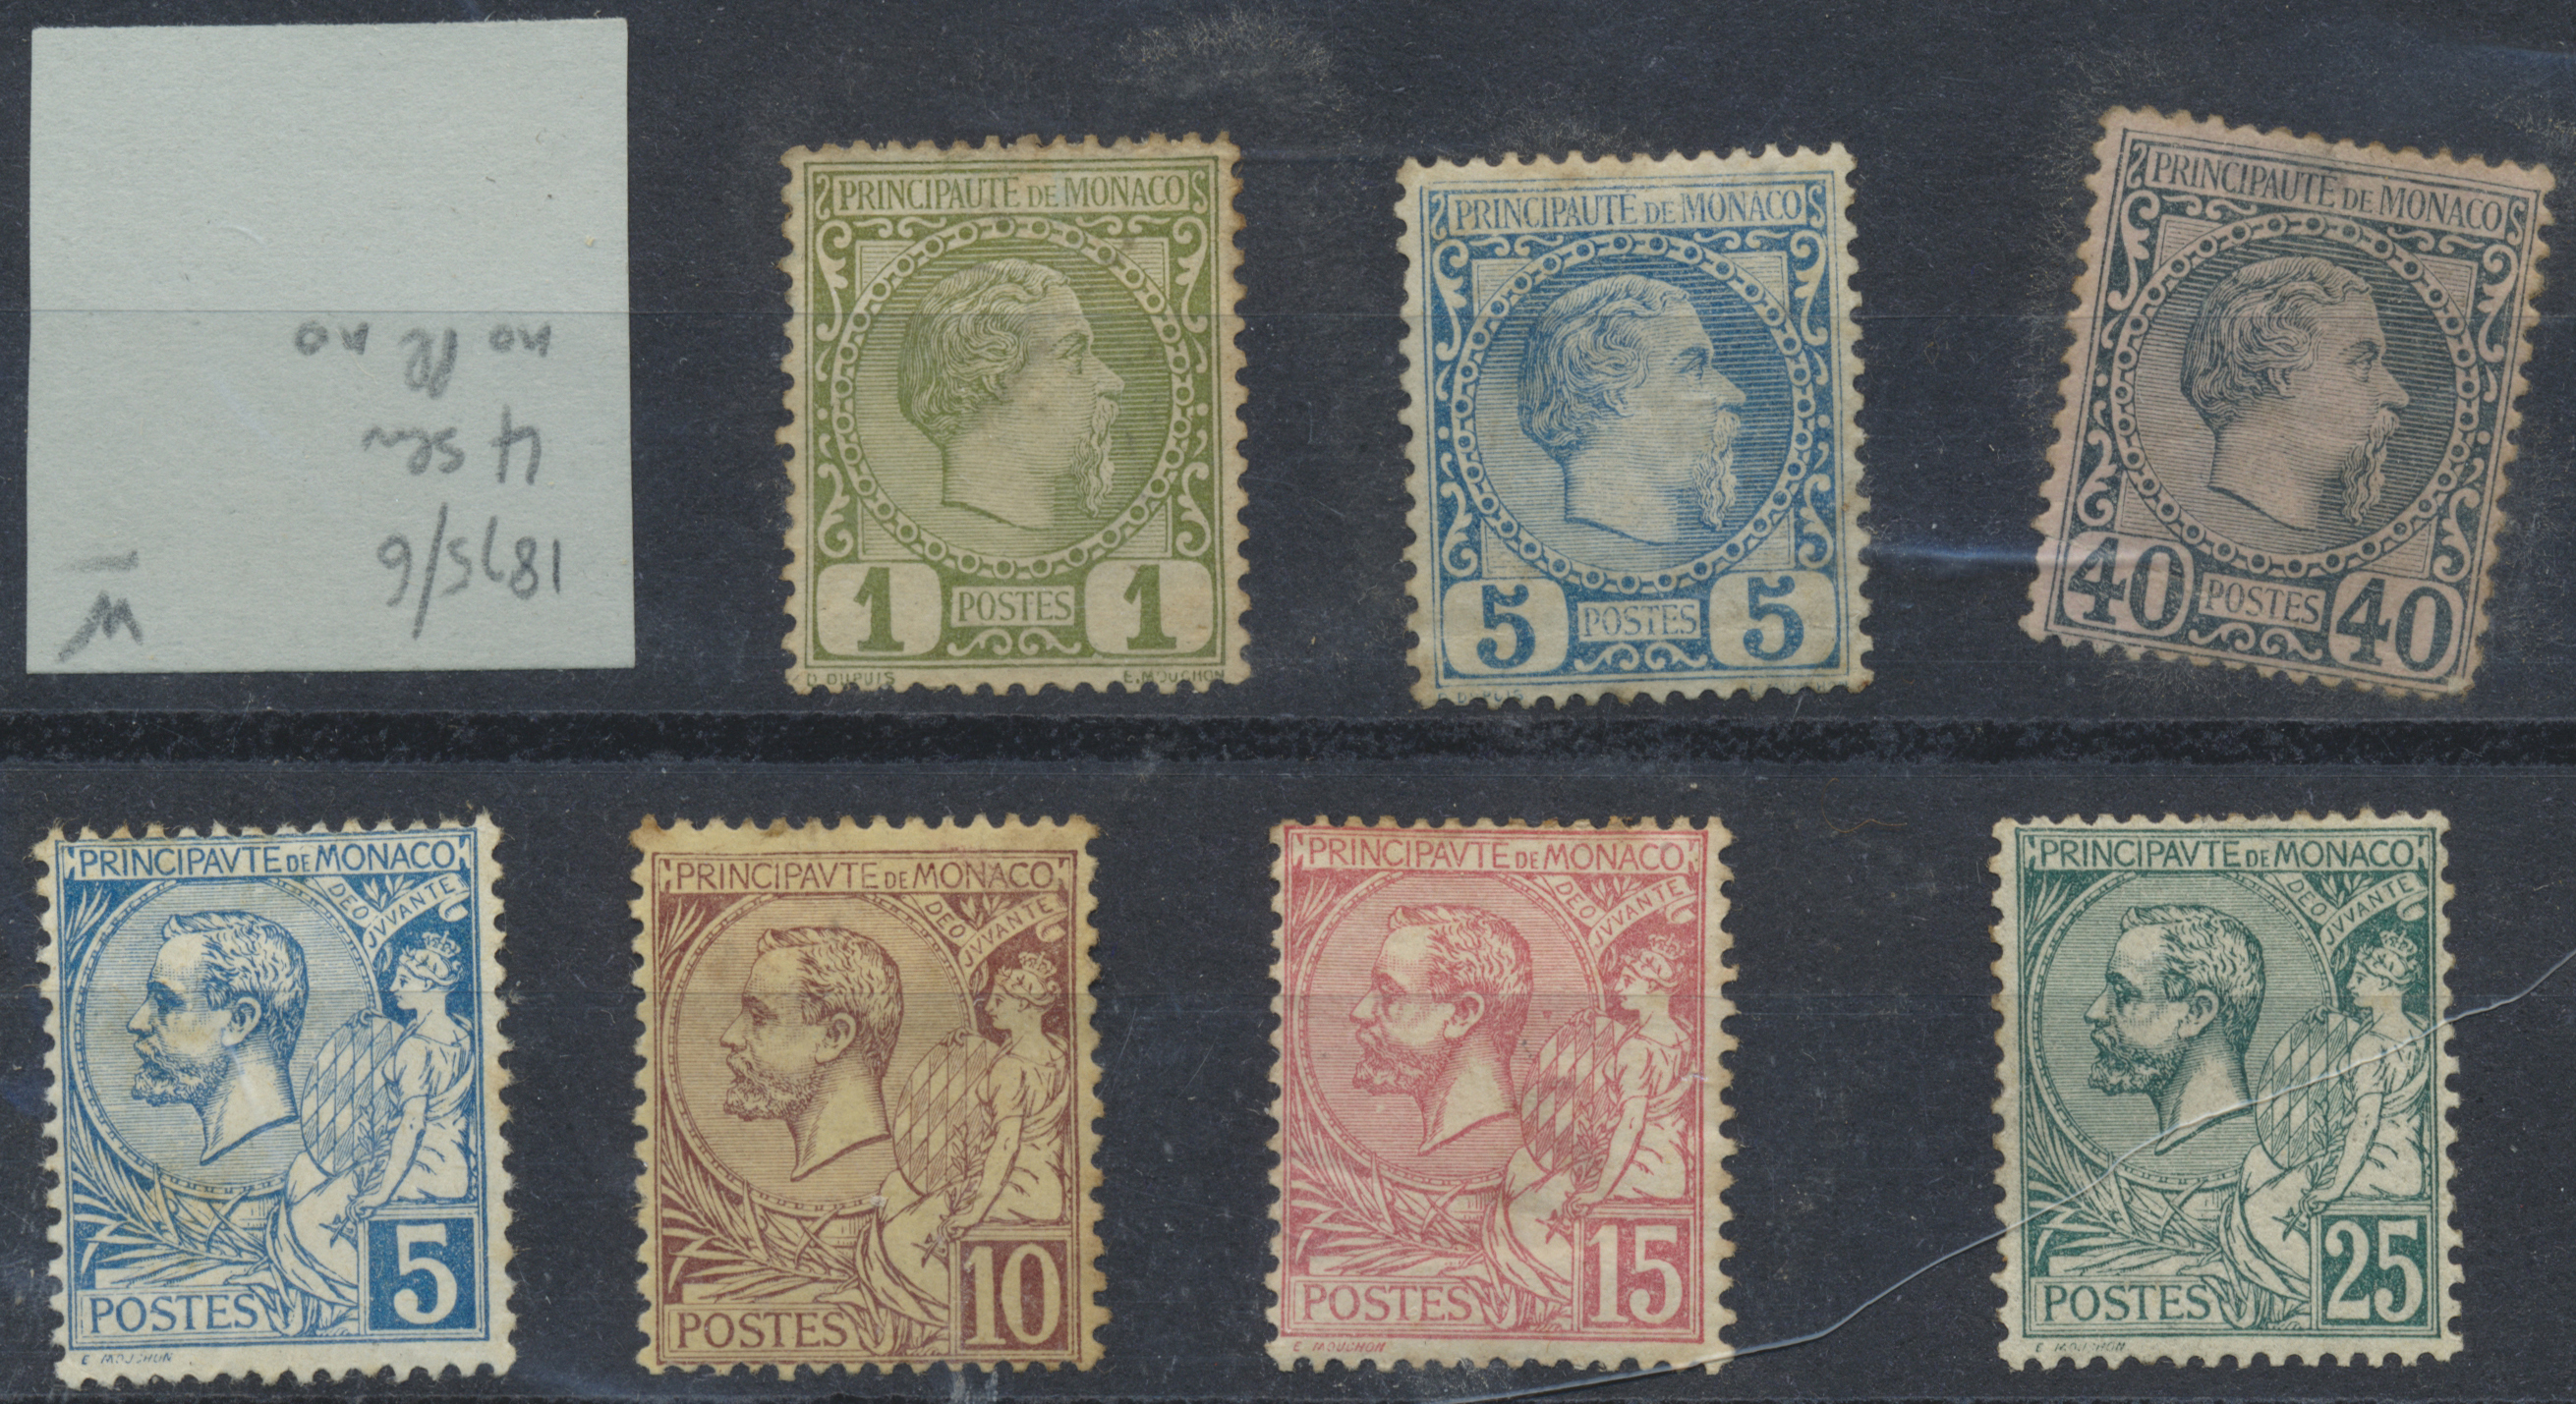 Lot 34135 - nachlässe  -  Auktionshaus Christoph Gärtner GmbH & Co. KG Collections Germany,  Collections Supplement, Surprise boxes #39 Day 7